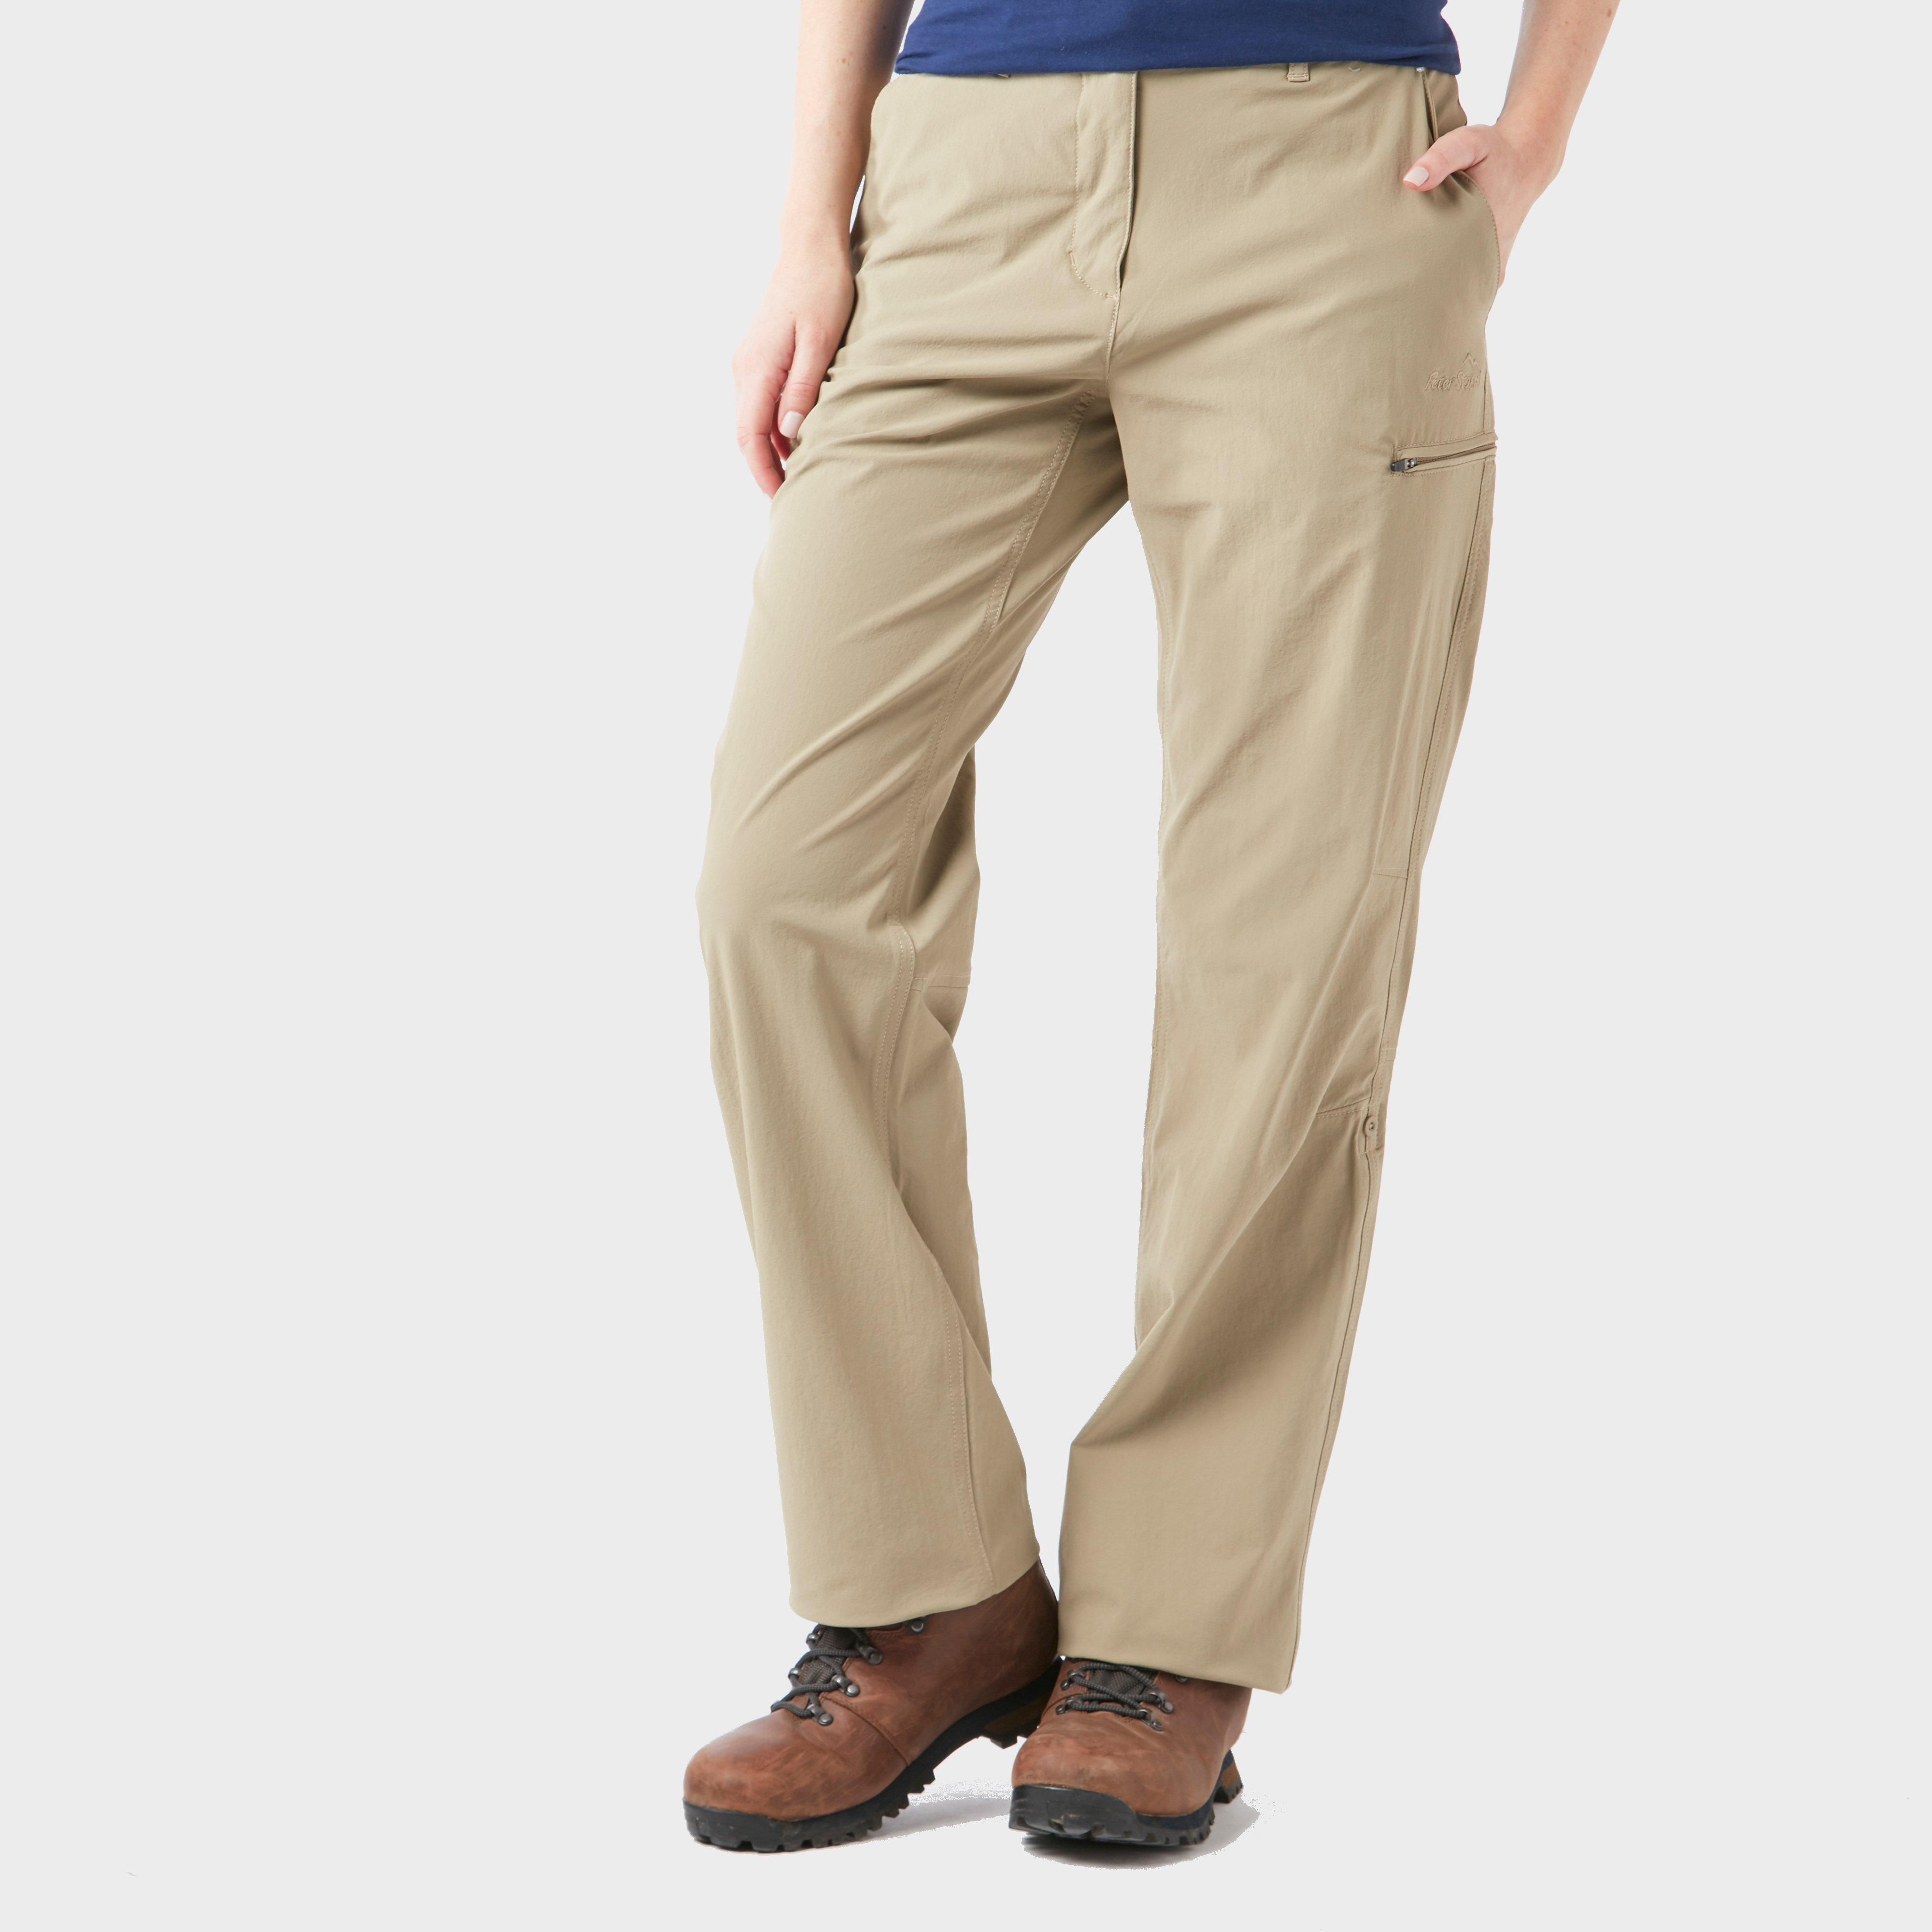 Peter Storm Peter Storm womens Stretch Roll Up Trousers - Beige, Beige